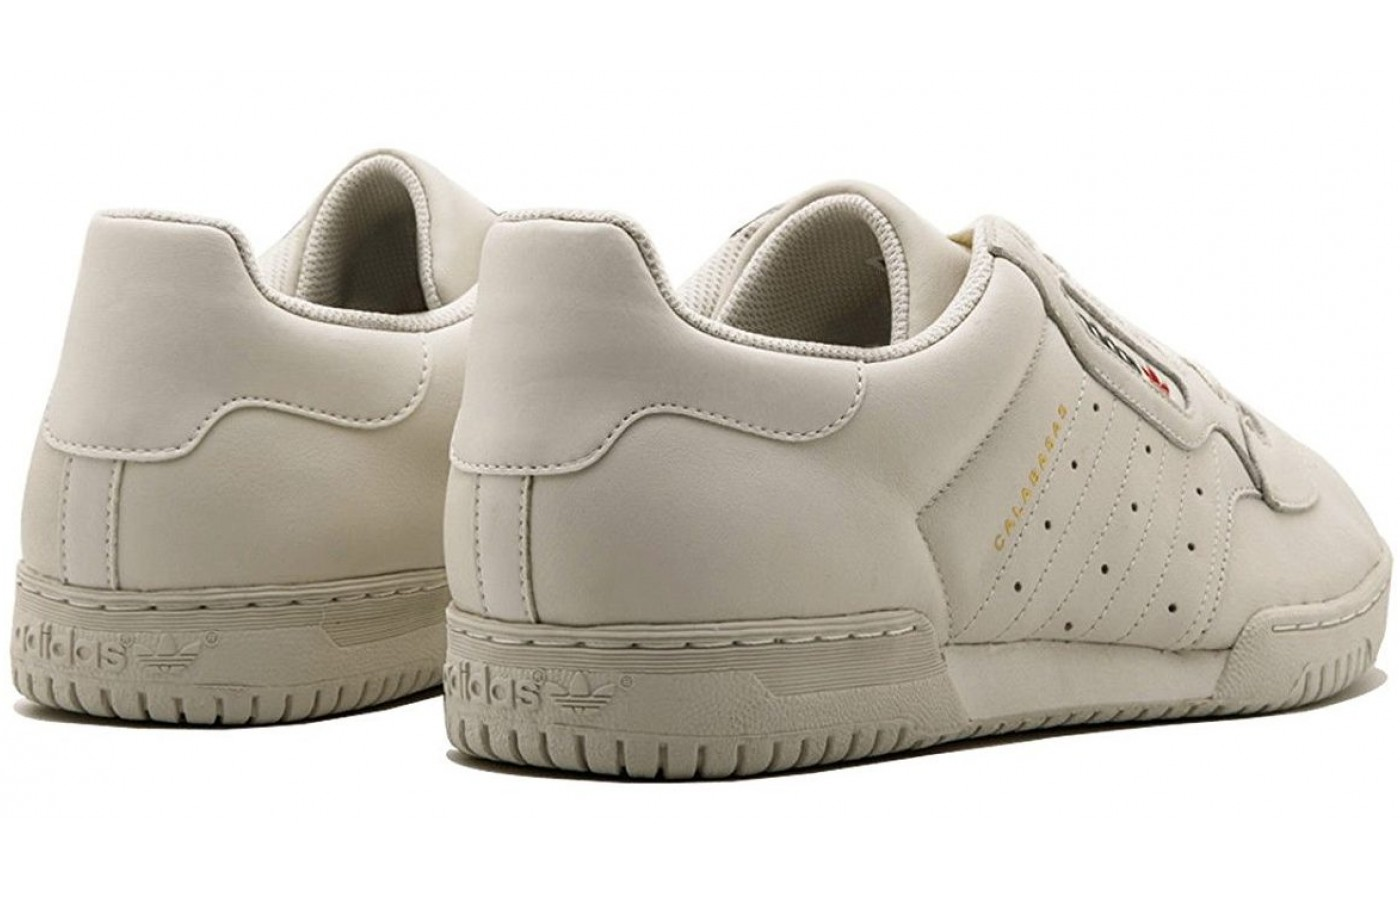 rear angled view of the Adidas Yeezy Powerphase